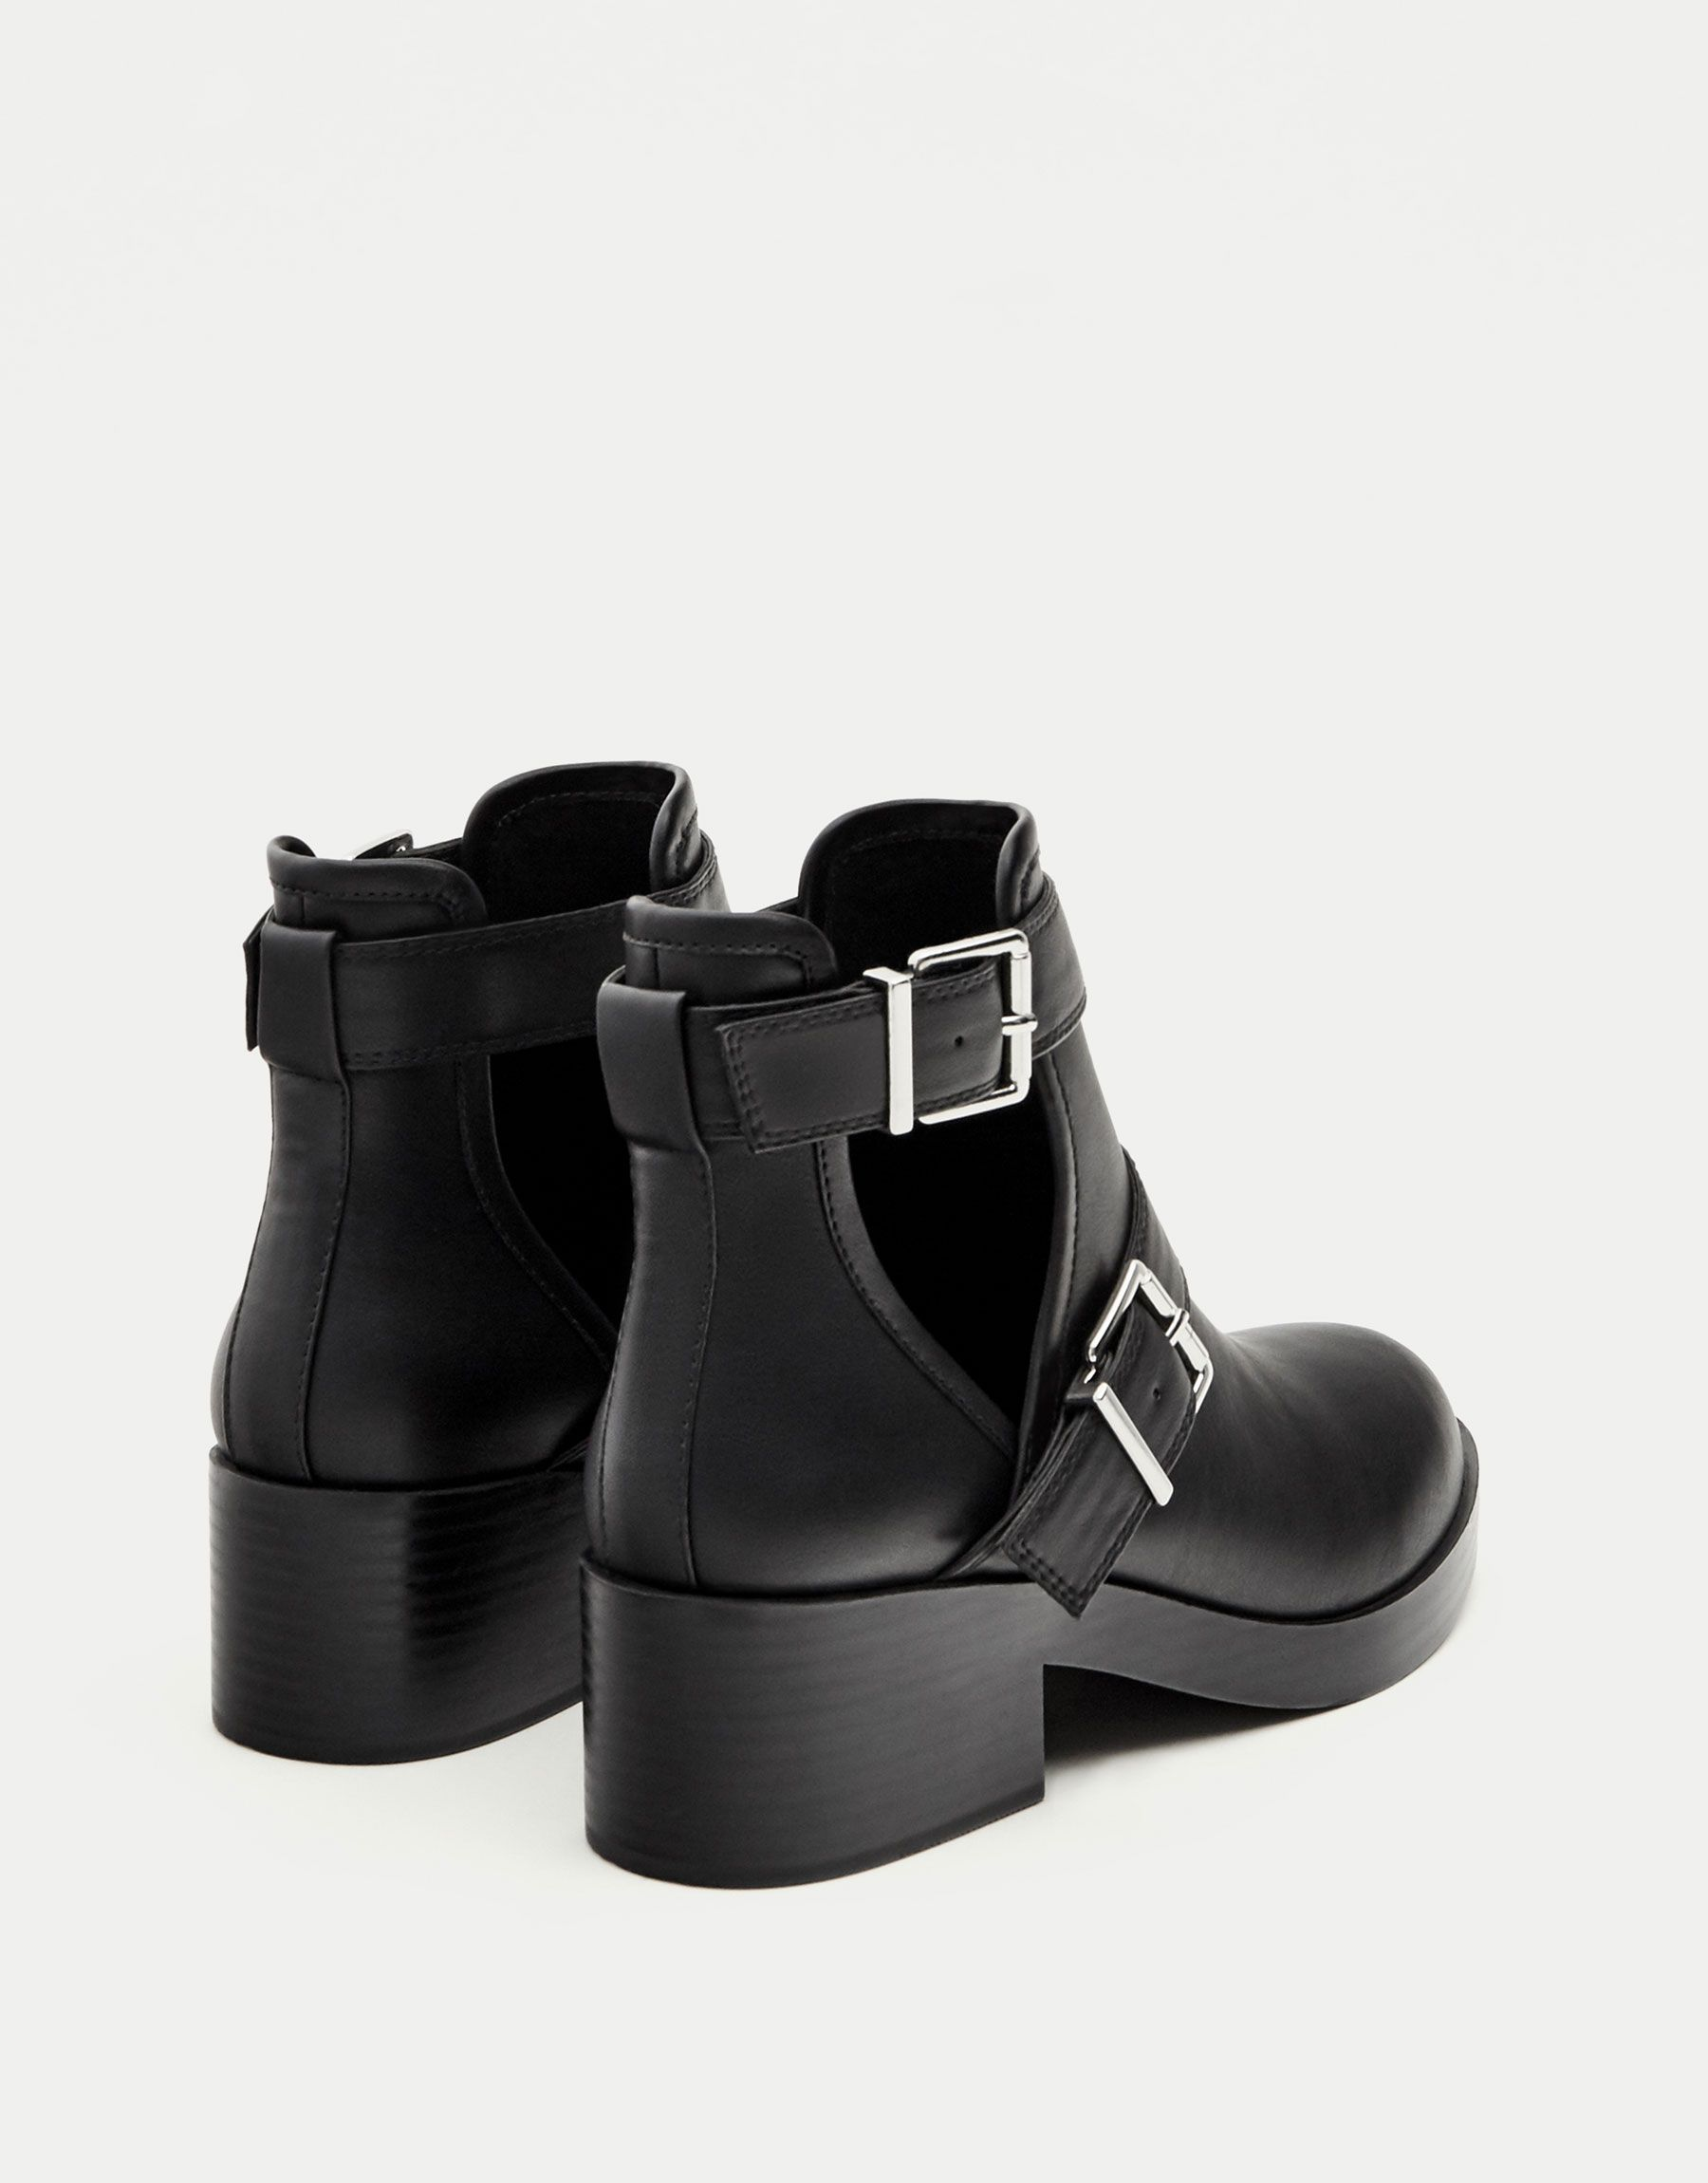 1db731e5a Flat openwork ankle boots - Ankle boots - Shoes - Woman - PULL&BEAR Mexico